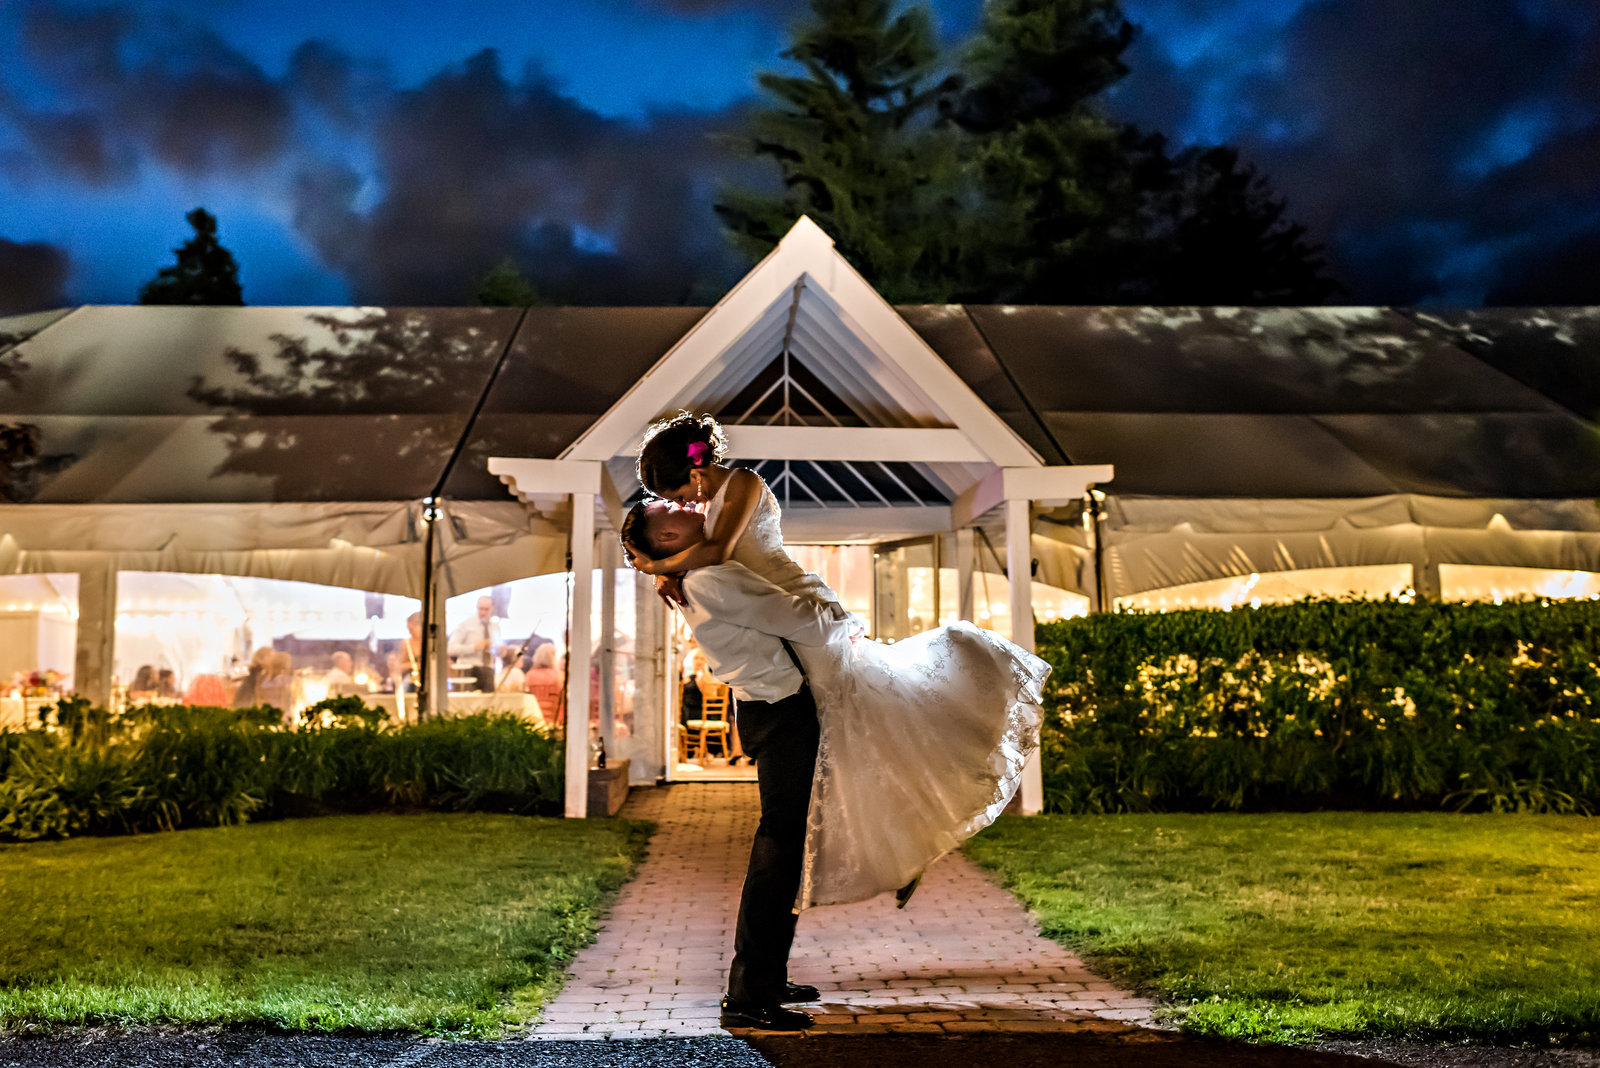 A groom lifts his bride up in the air in front of their reception tent at Pearl S Buck Estate in bucks county.